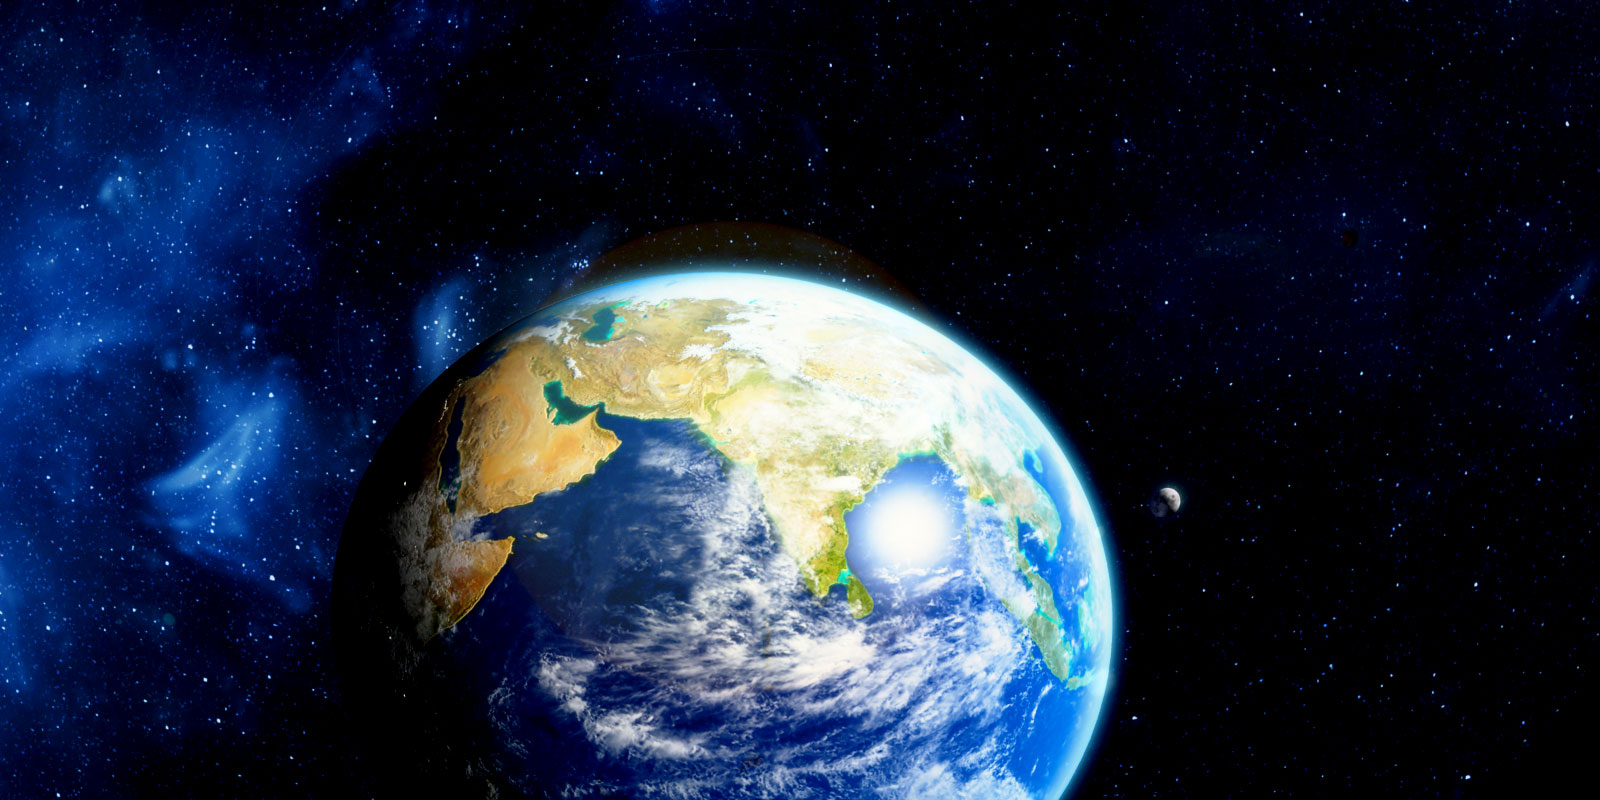 special characteristics of planet earth which make it suitable for sustaining life I haven't even begun discussing some of the rare-earth arguments that point out a range of factors that affect the earth that may be necessary for life, but that may be rare for other planets.